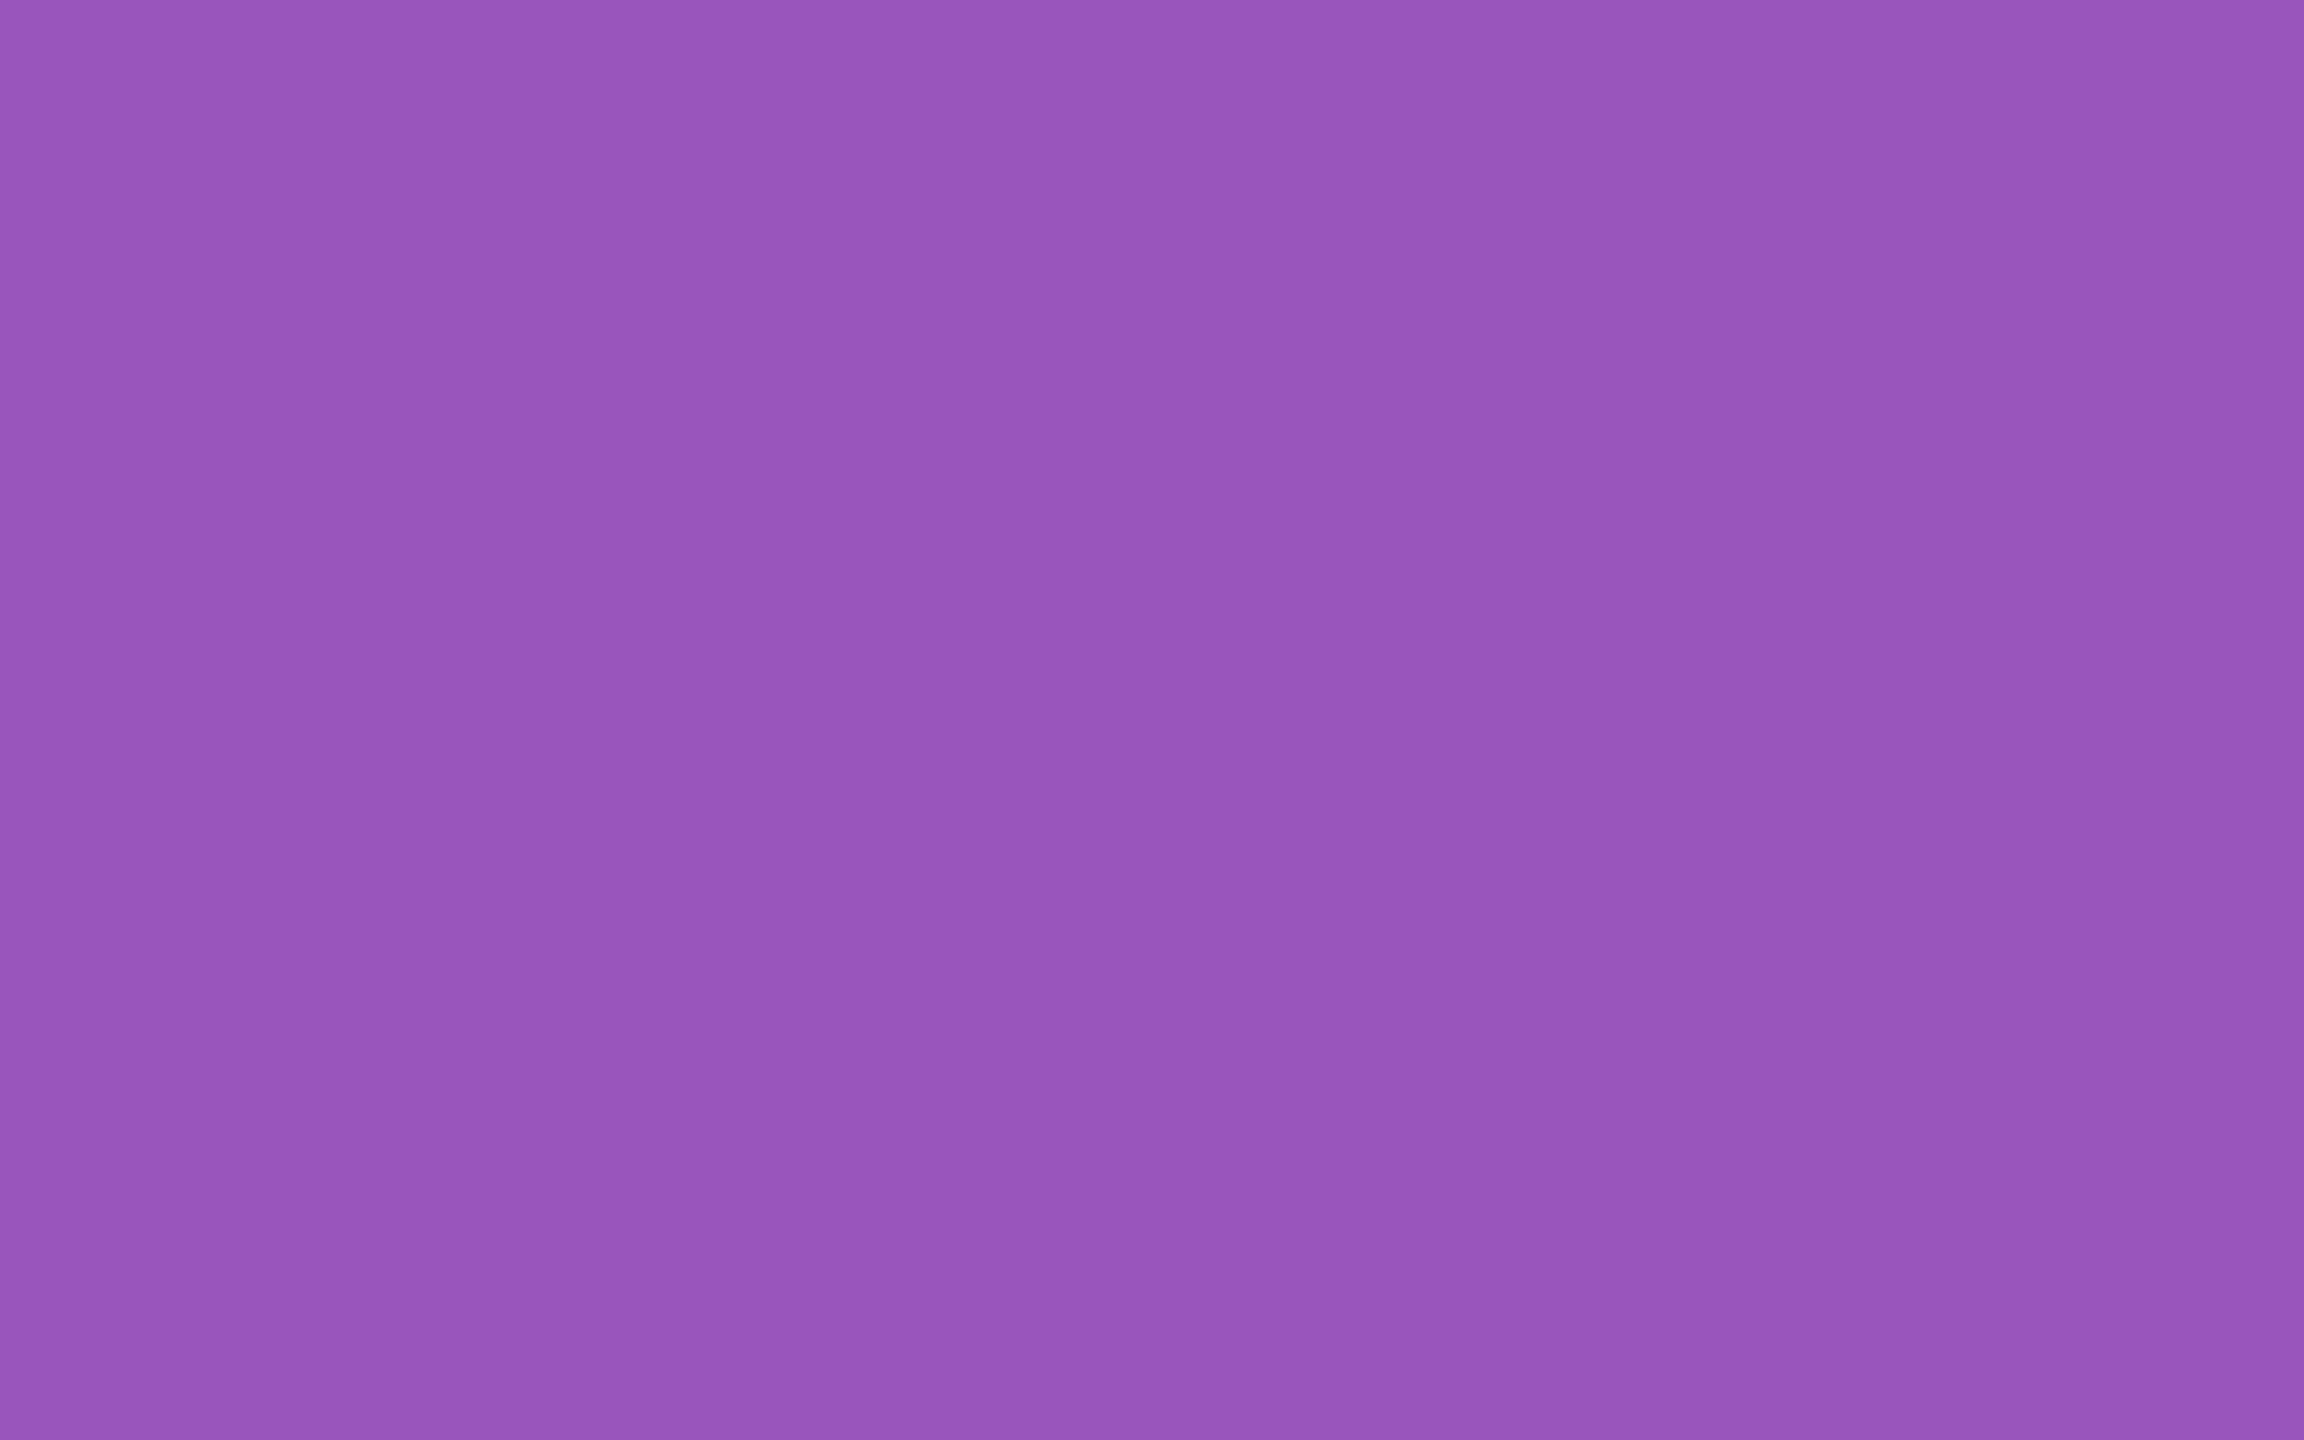 2304x1440 Deep Lilac Solid Color Background